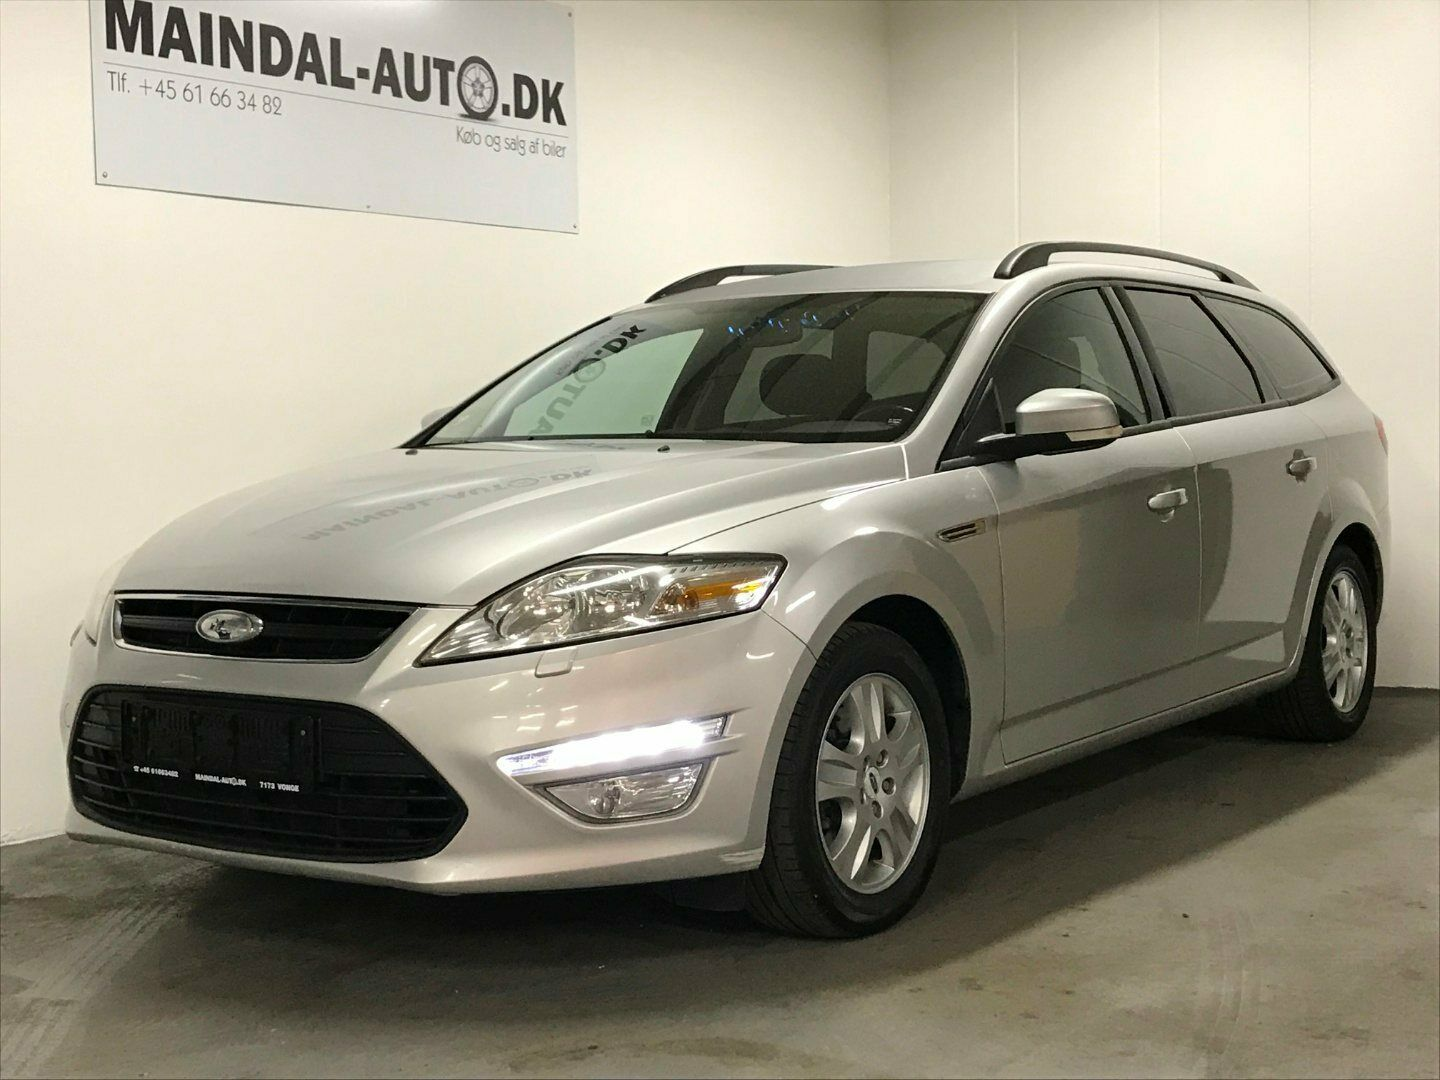 Ford Mondeo 1,6 TDCi 115 Trend stc. ECO 5d - 79.900 kr.